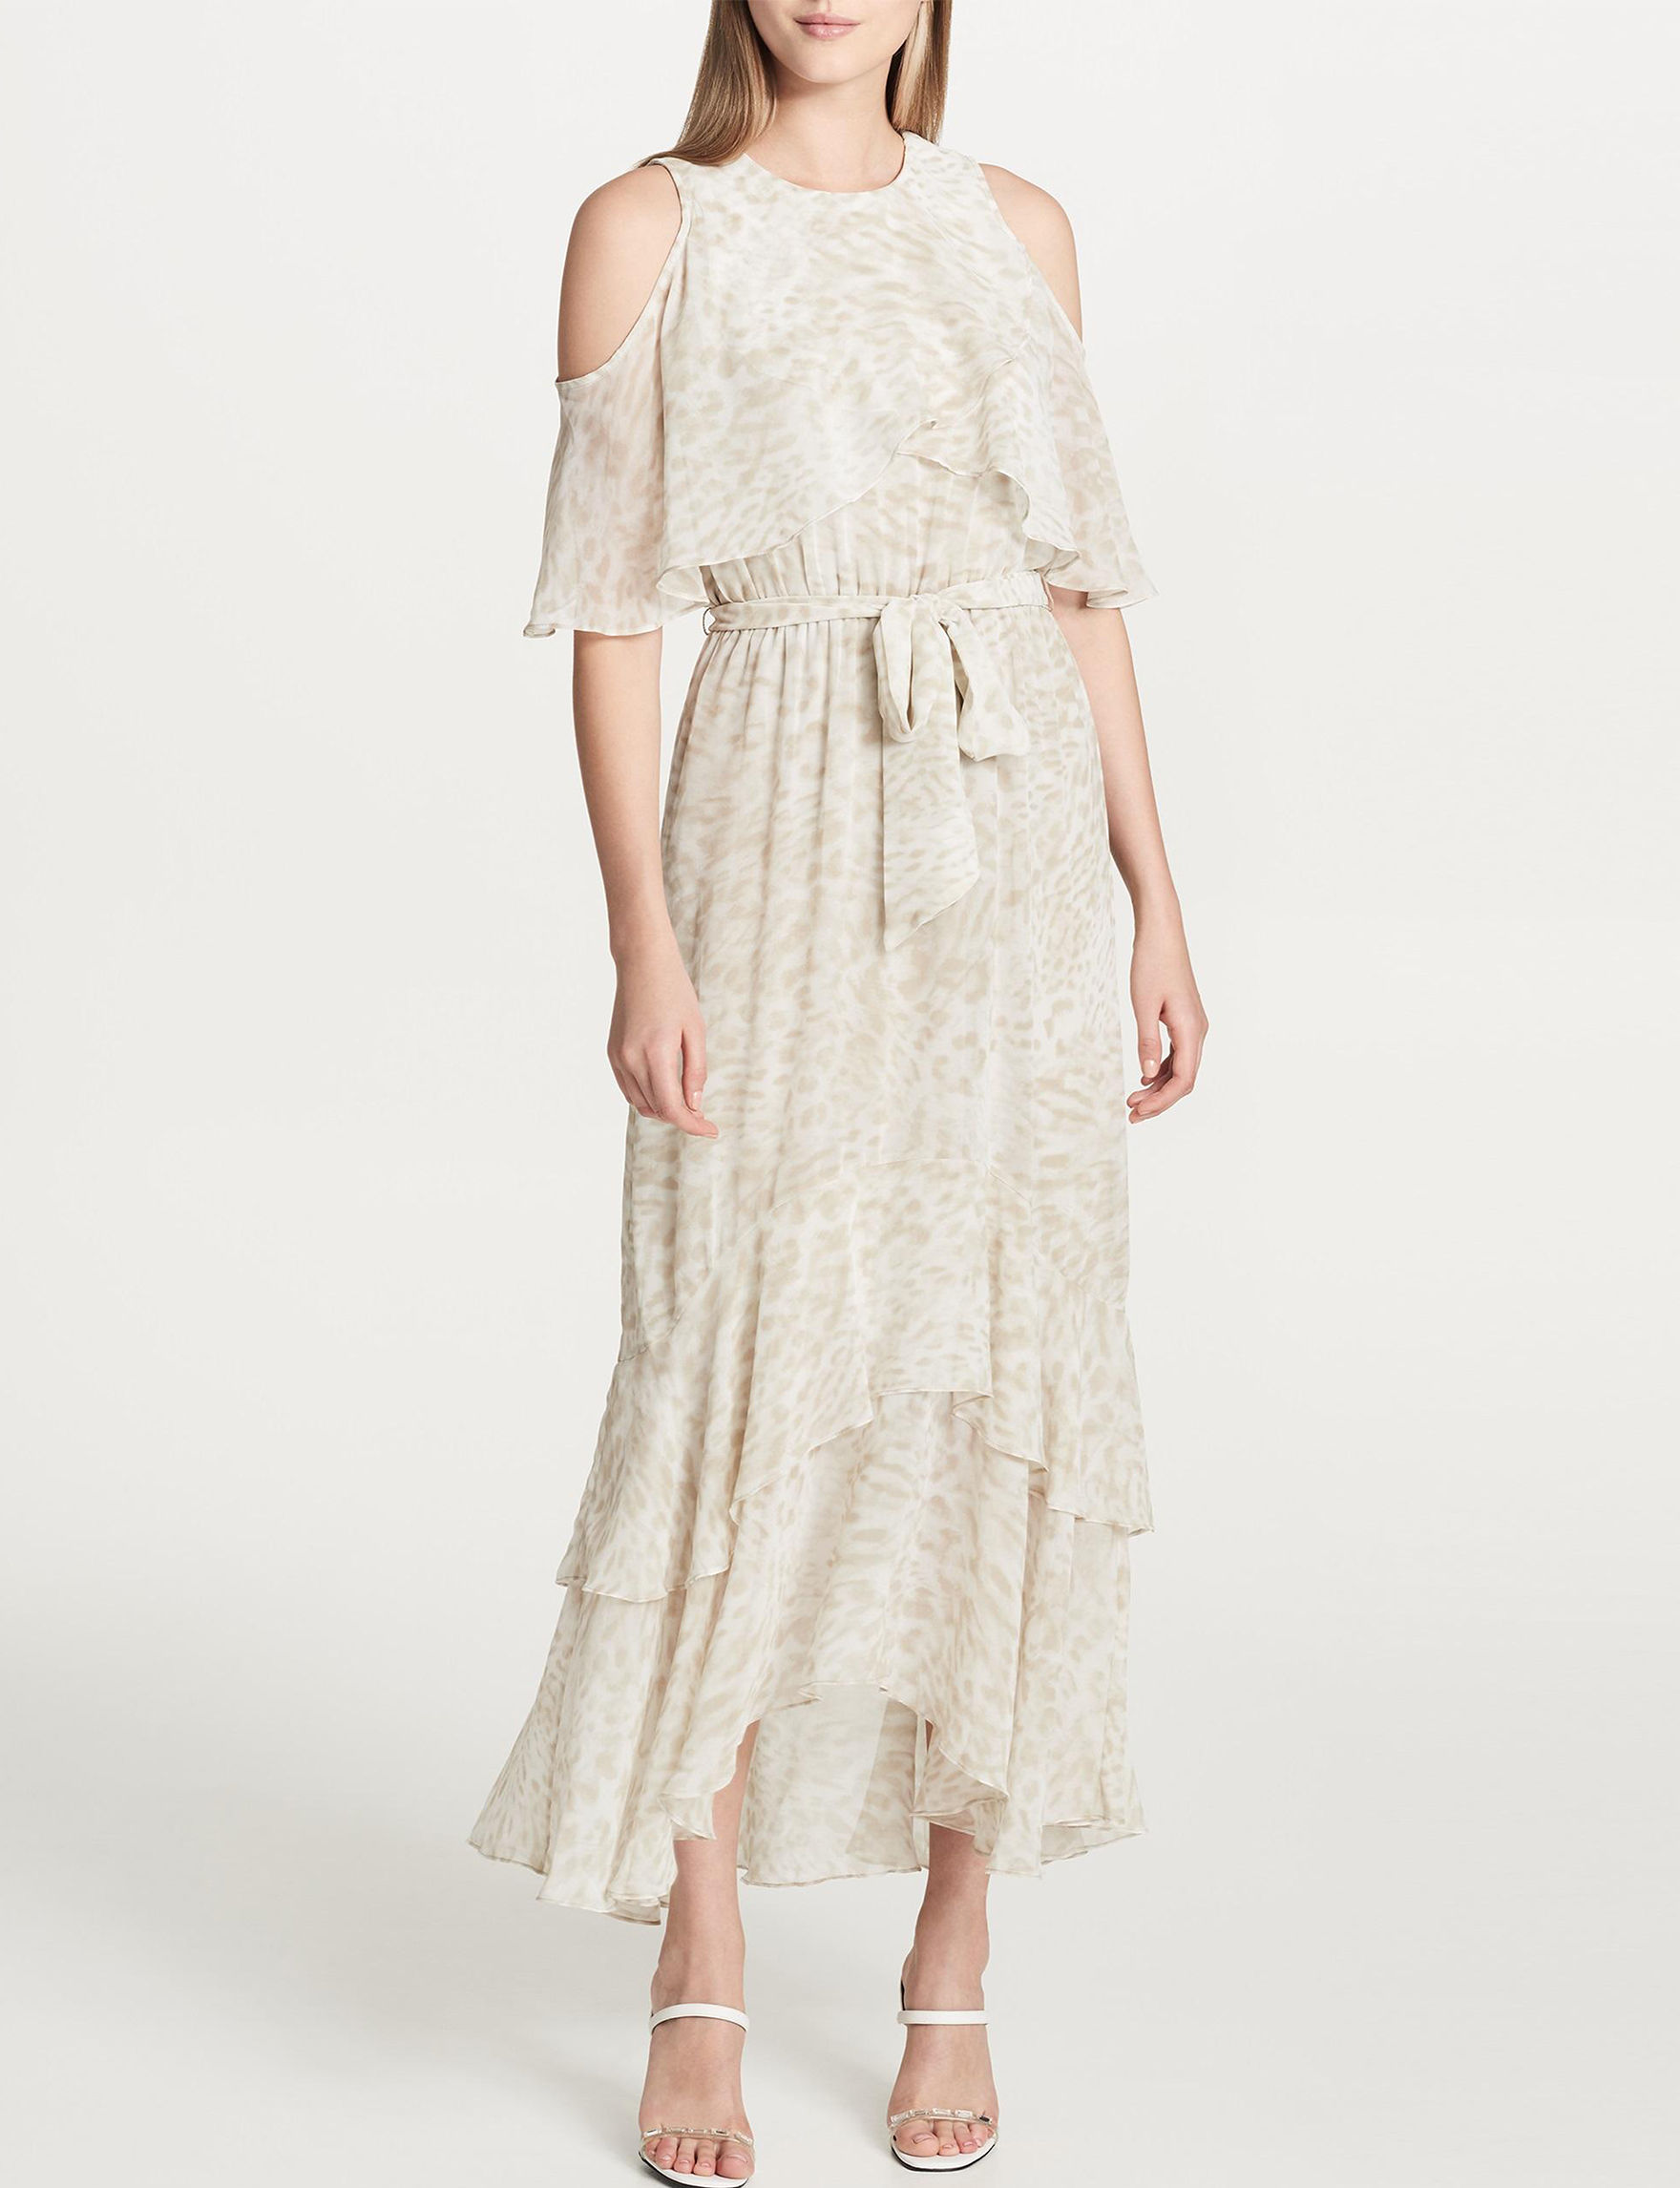 Calvin Klein Beige Everyday & Casual Fit & Flare Dresses